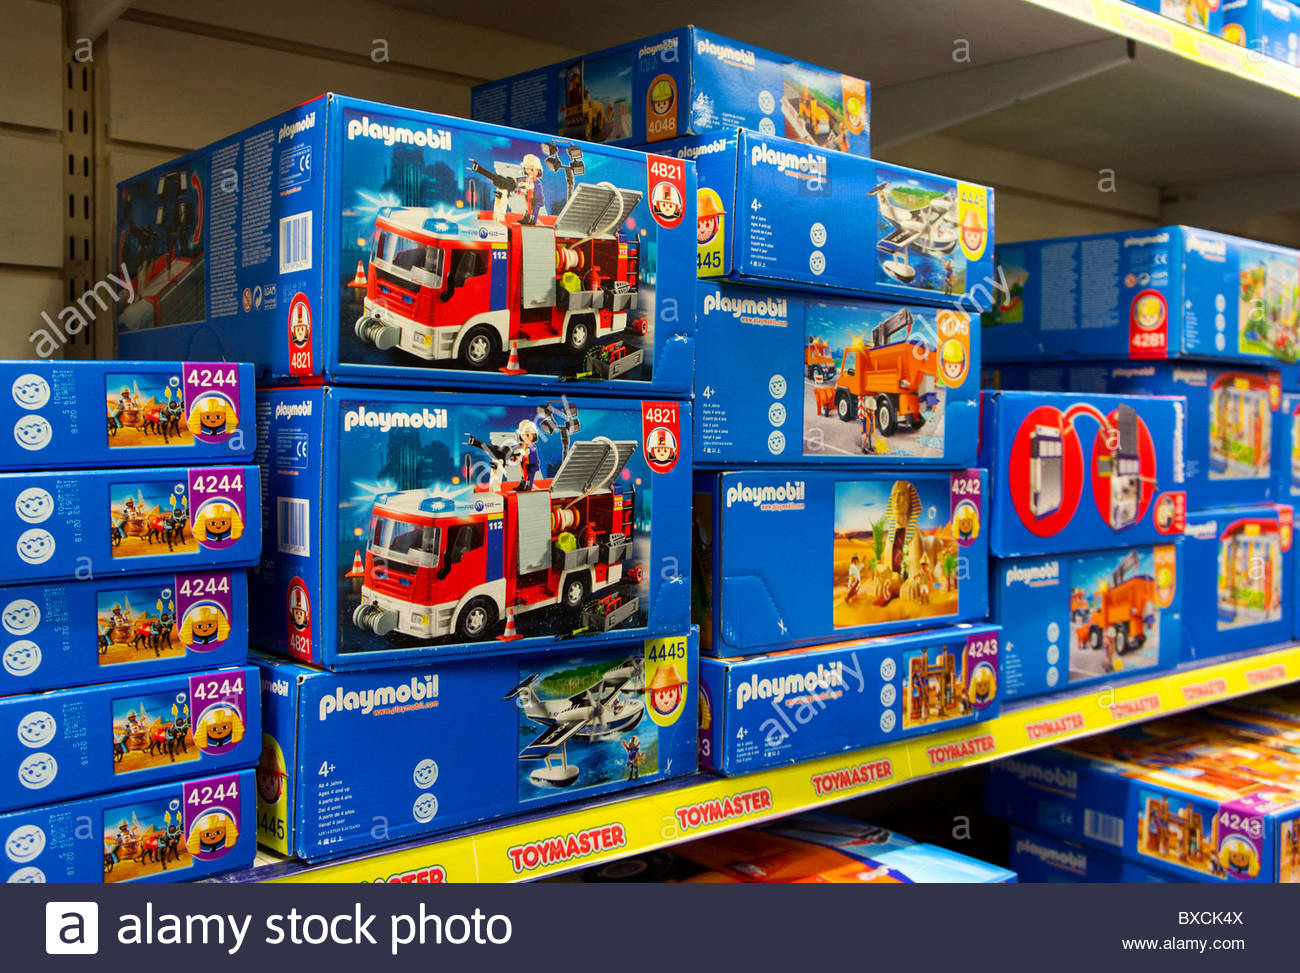 playmobil stock